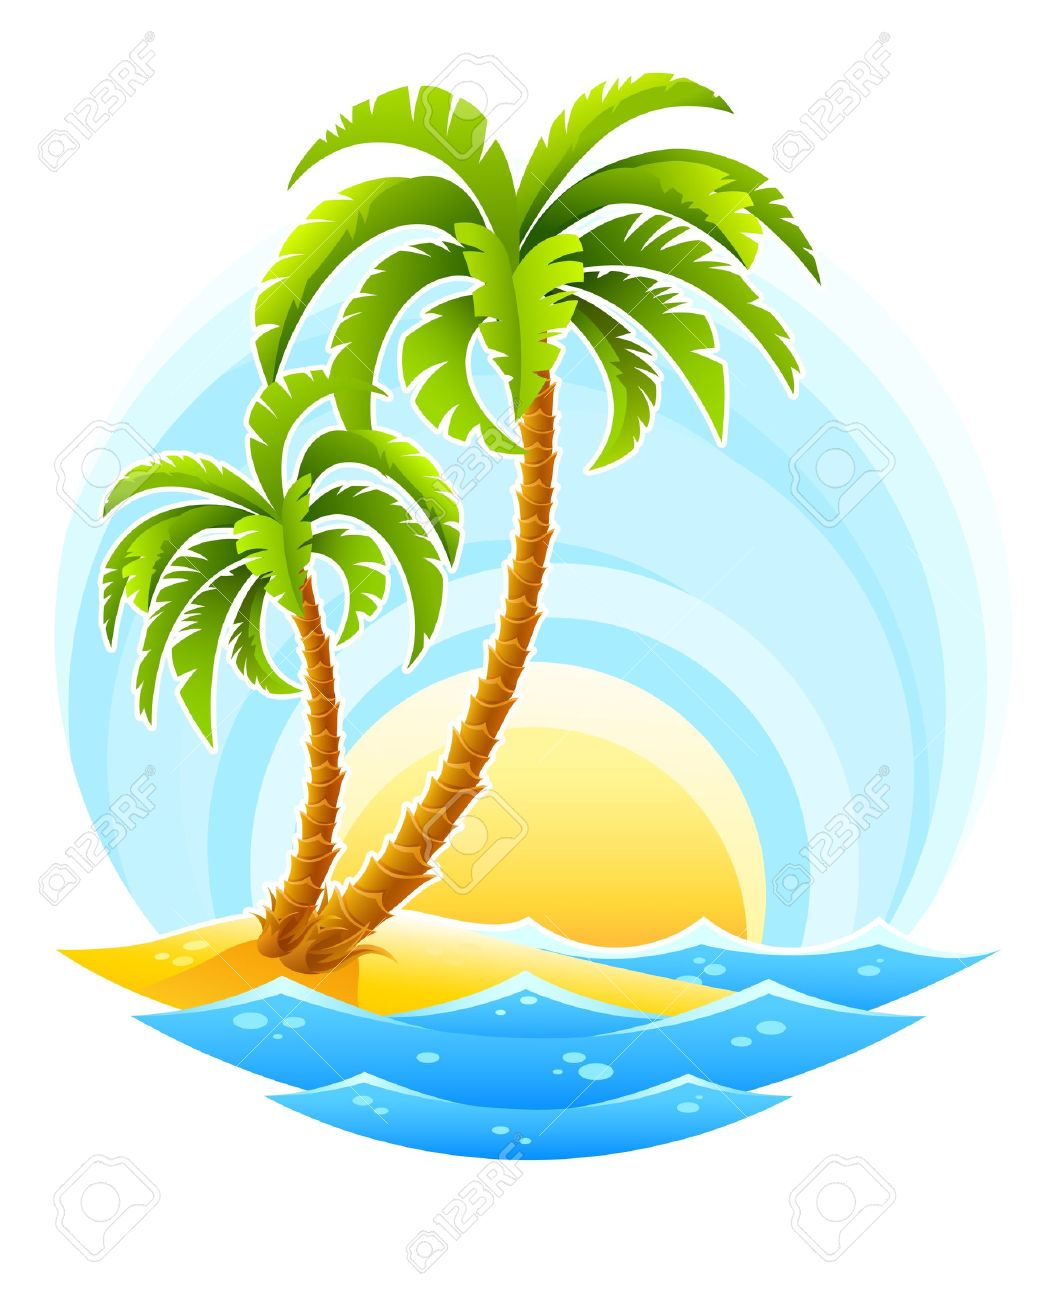 Palms Clipart | Free download on ClipArtMag